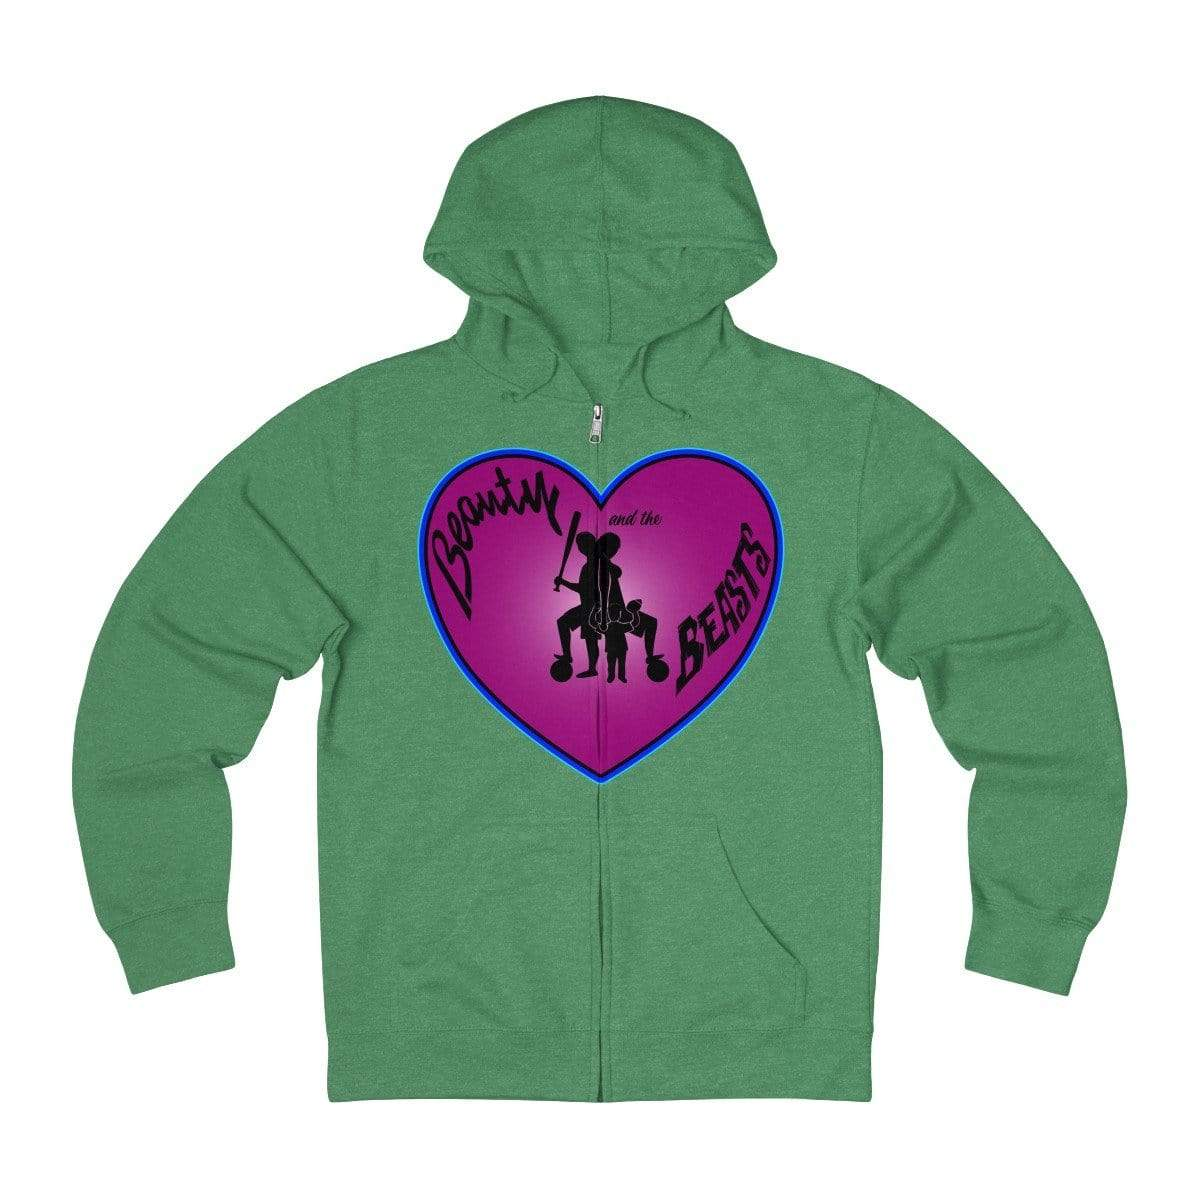 Plumskum Hoodie Kelly Heather / XS Sports Mother of Twins + French Terry Zip Hoodie